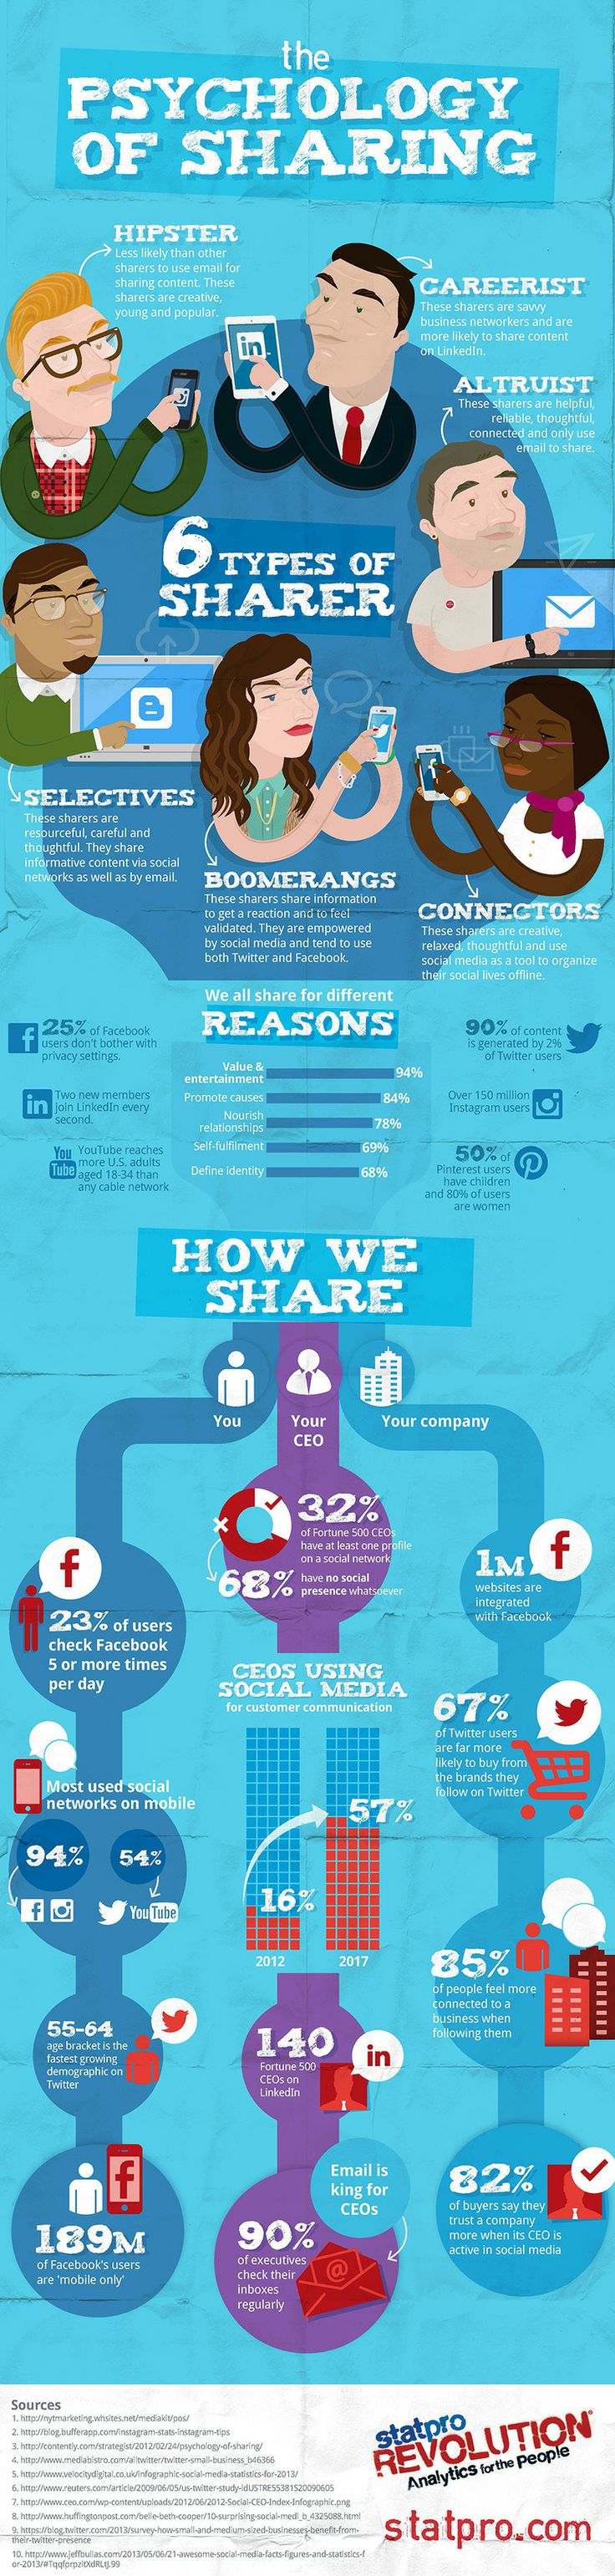 statpro psychology social network business sharing #infographic